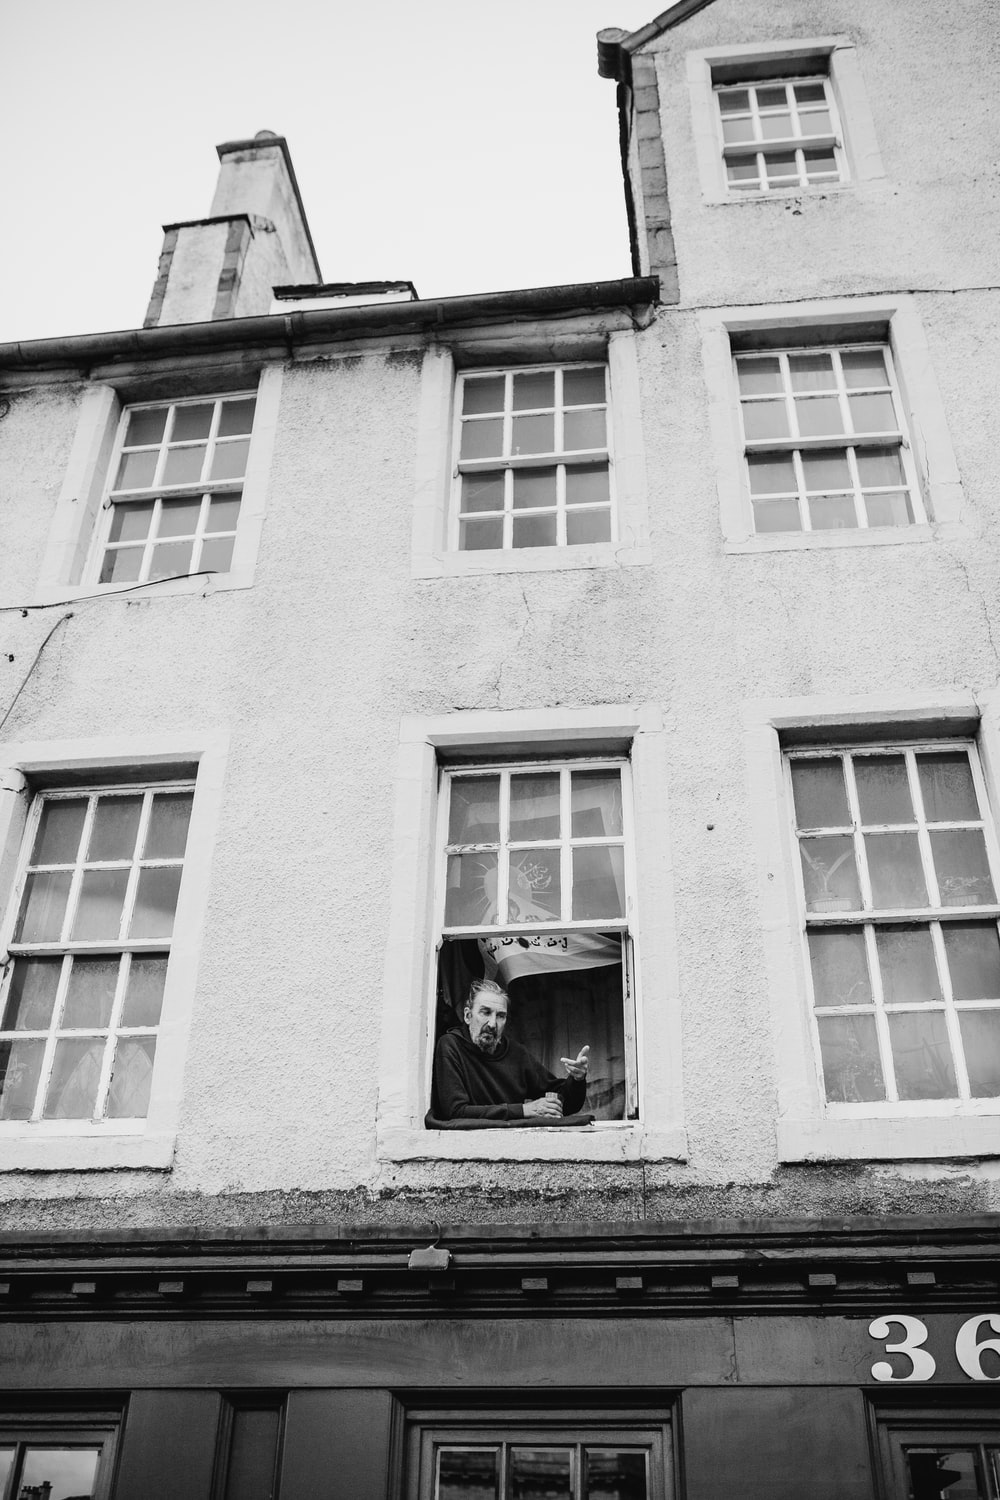 grayscale photo of man on window